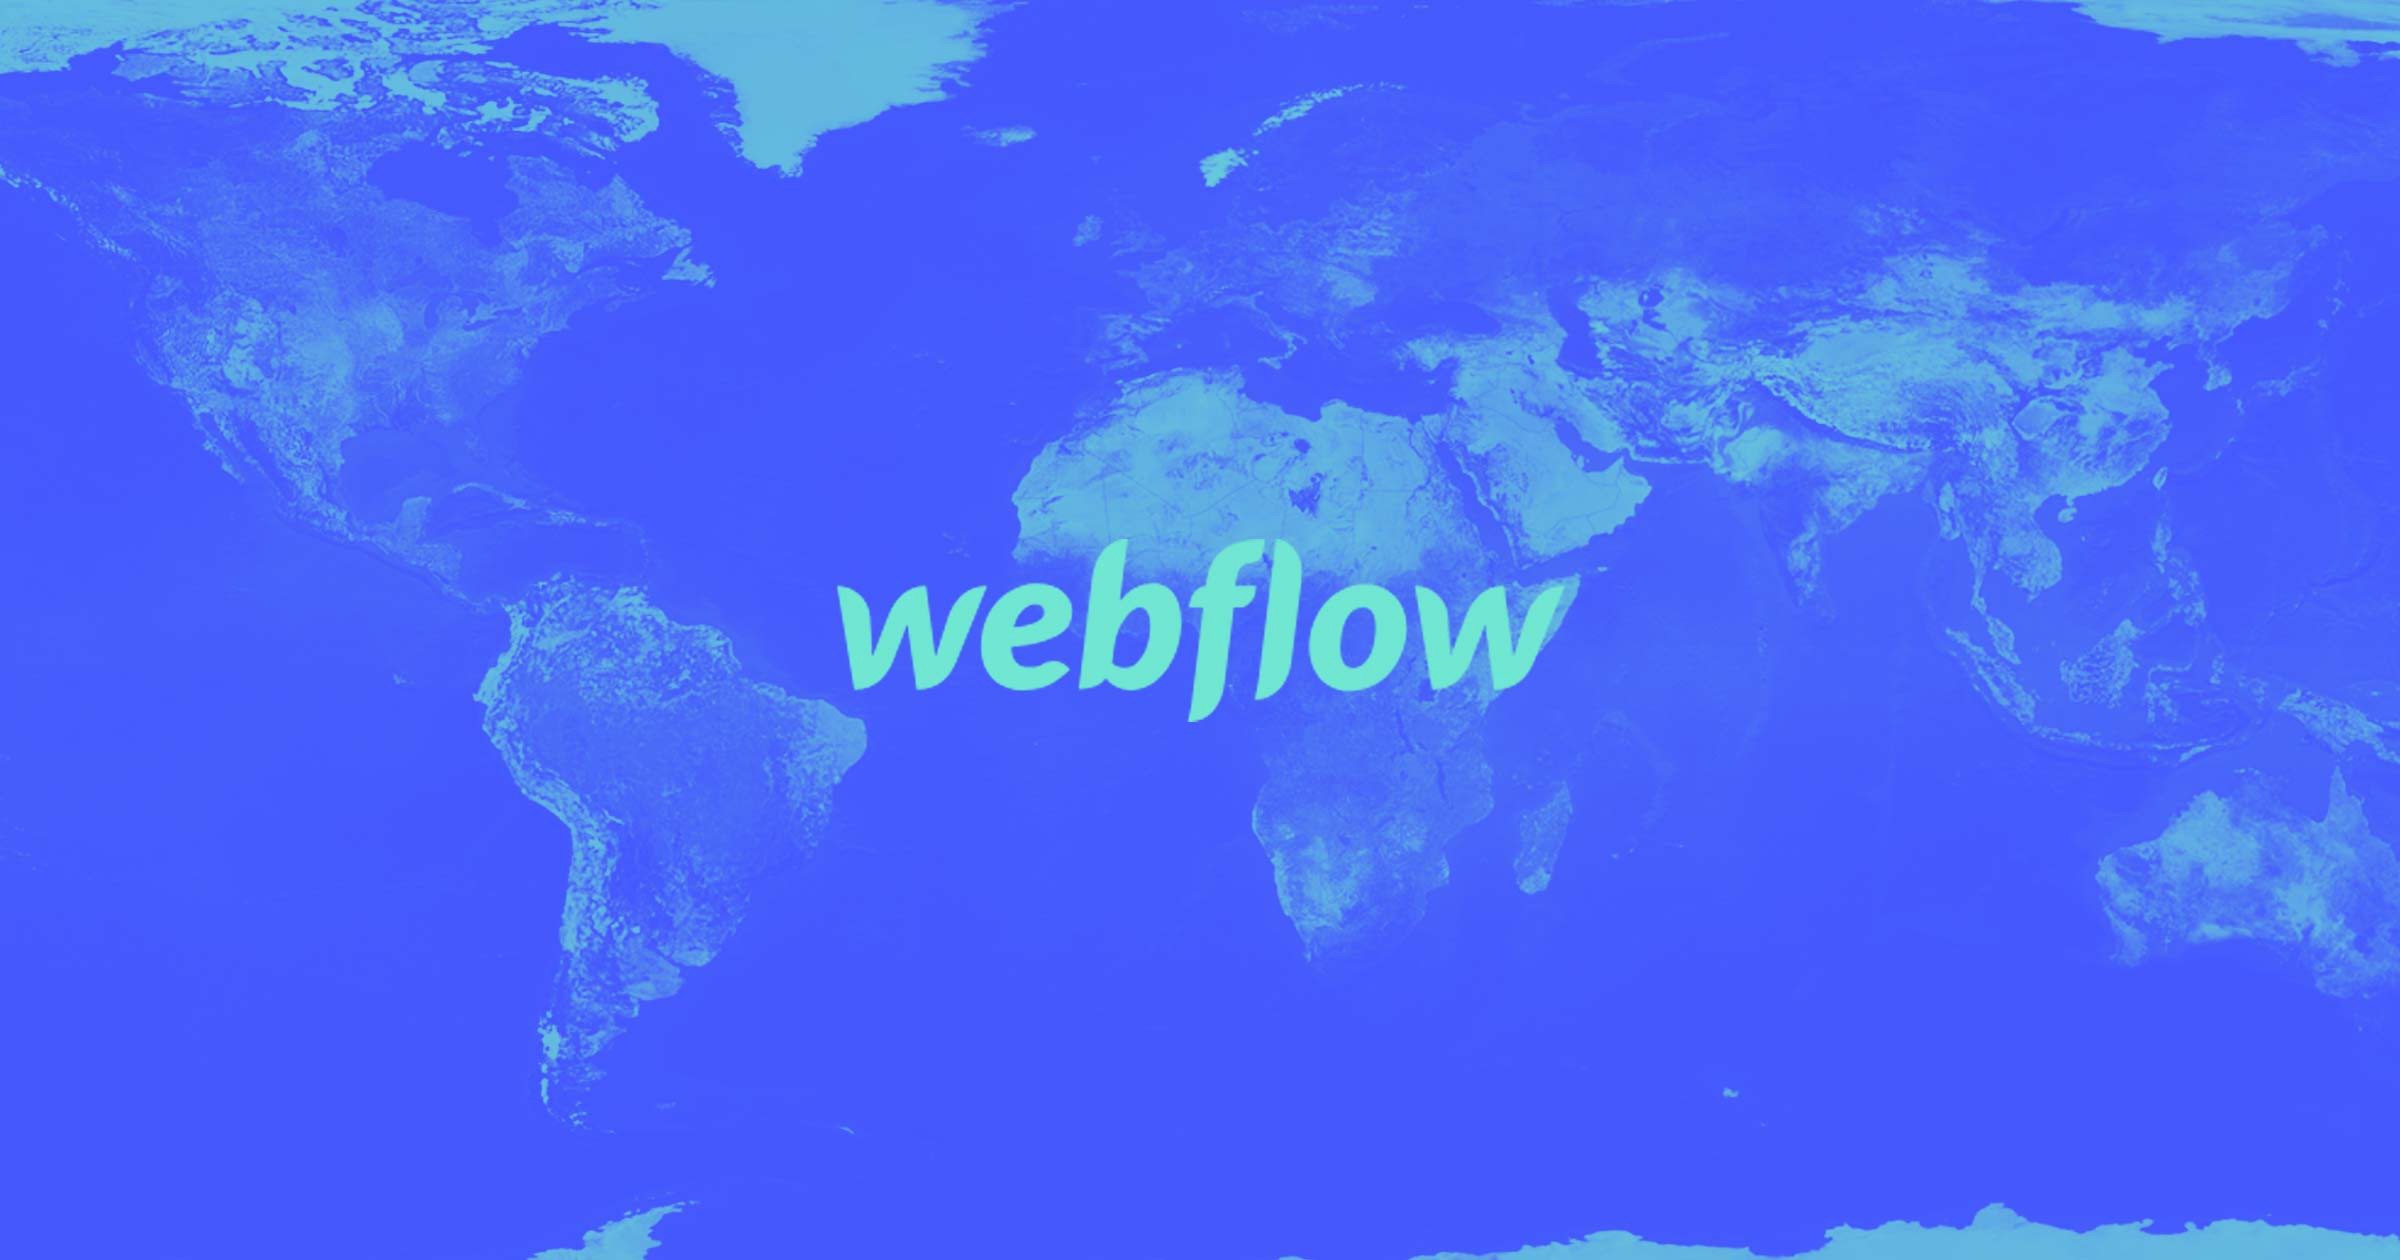 /building-a-remote-friendly-company-an-interview-with-webflow-ceo-vlad-magdalin-3597d55df44c feature image